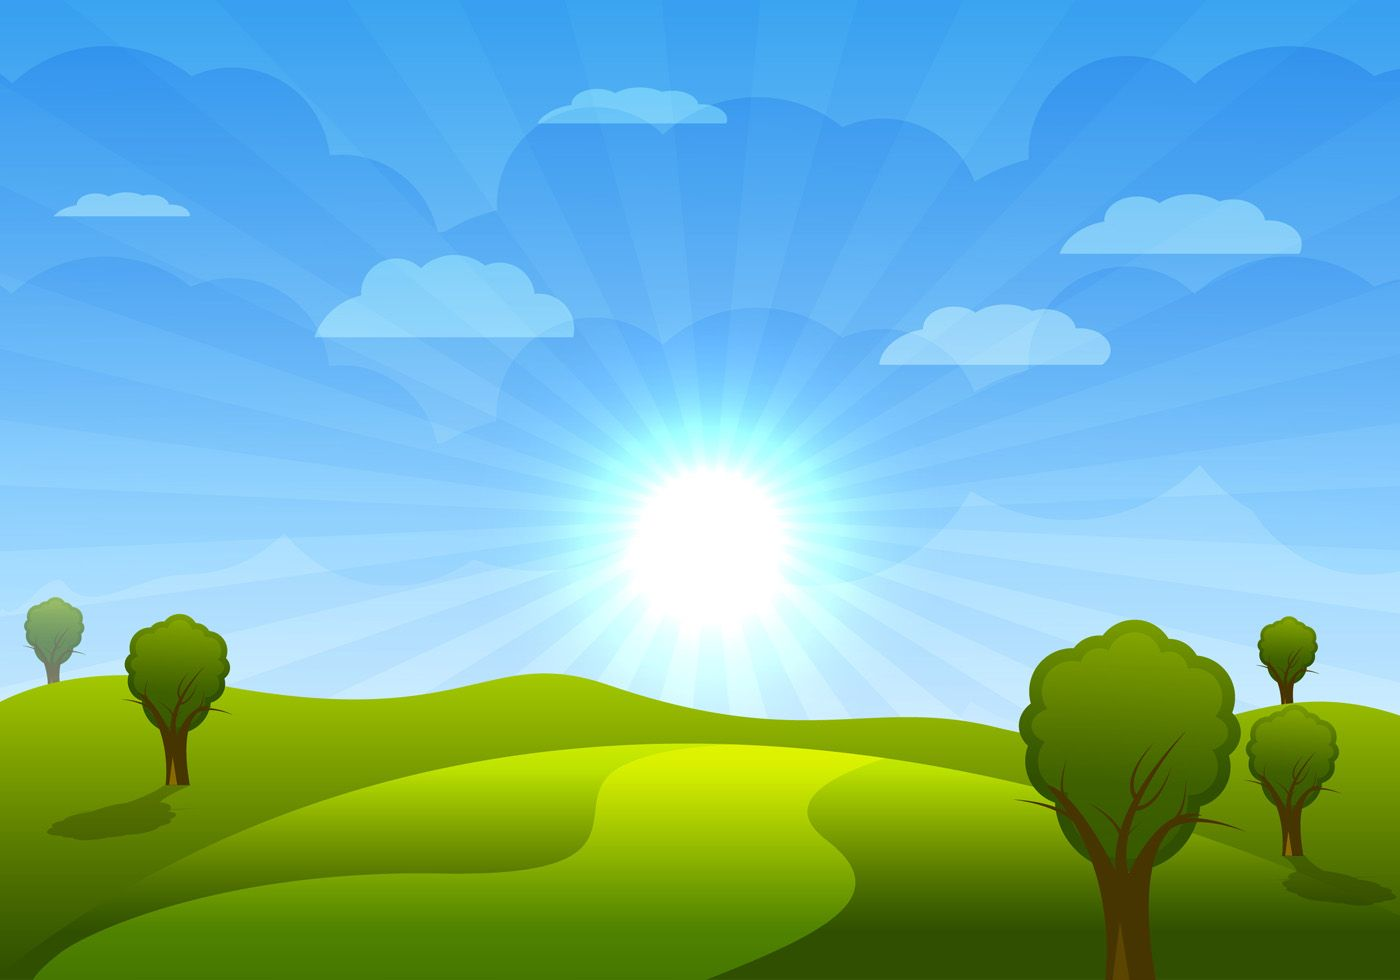 Beautiful cartoon landscape with trees and clouds vector.